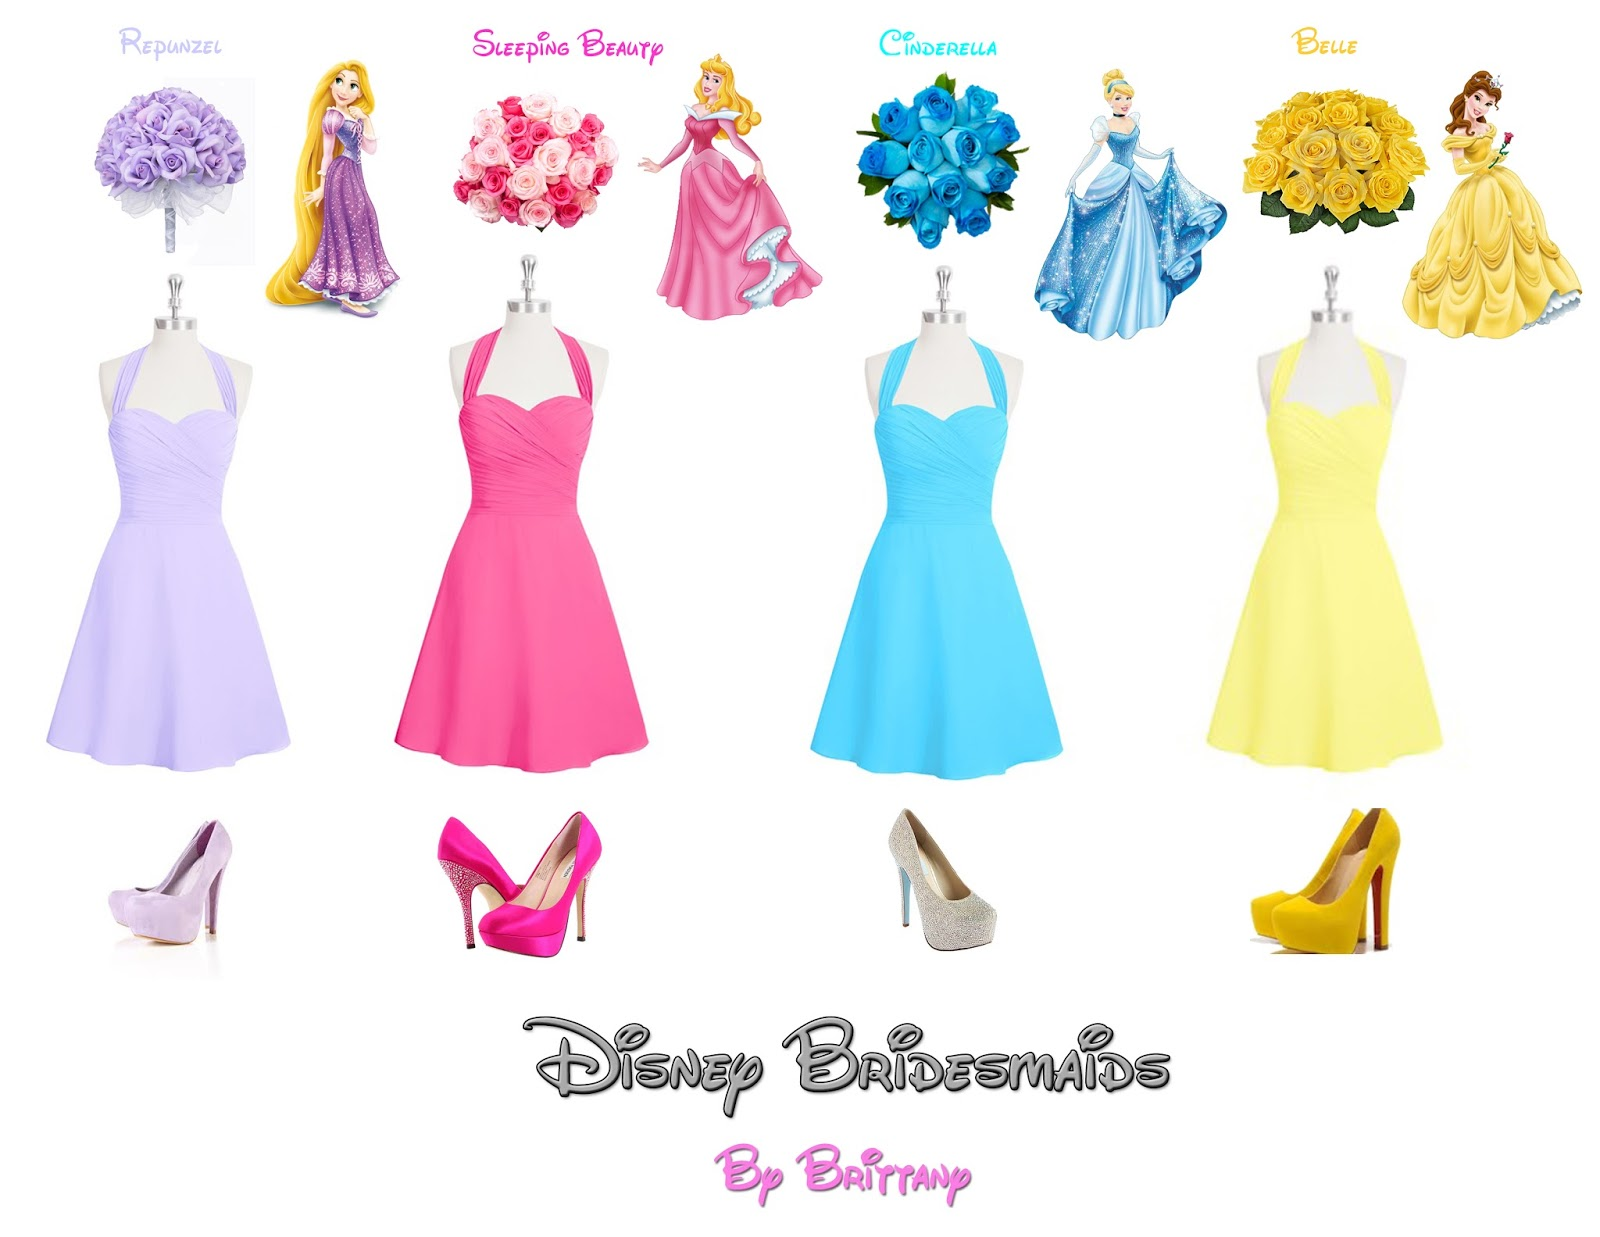 Disney Princess Bridesmaid Dresses